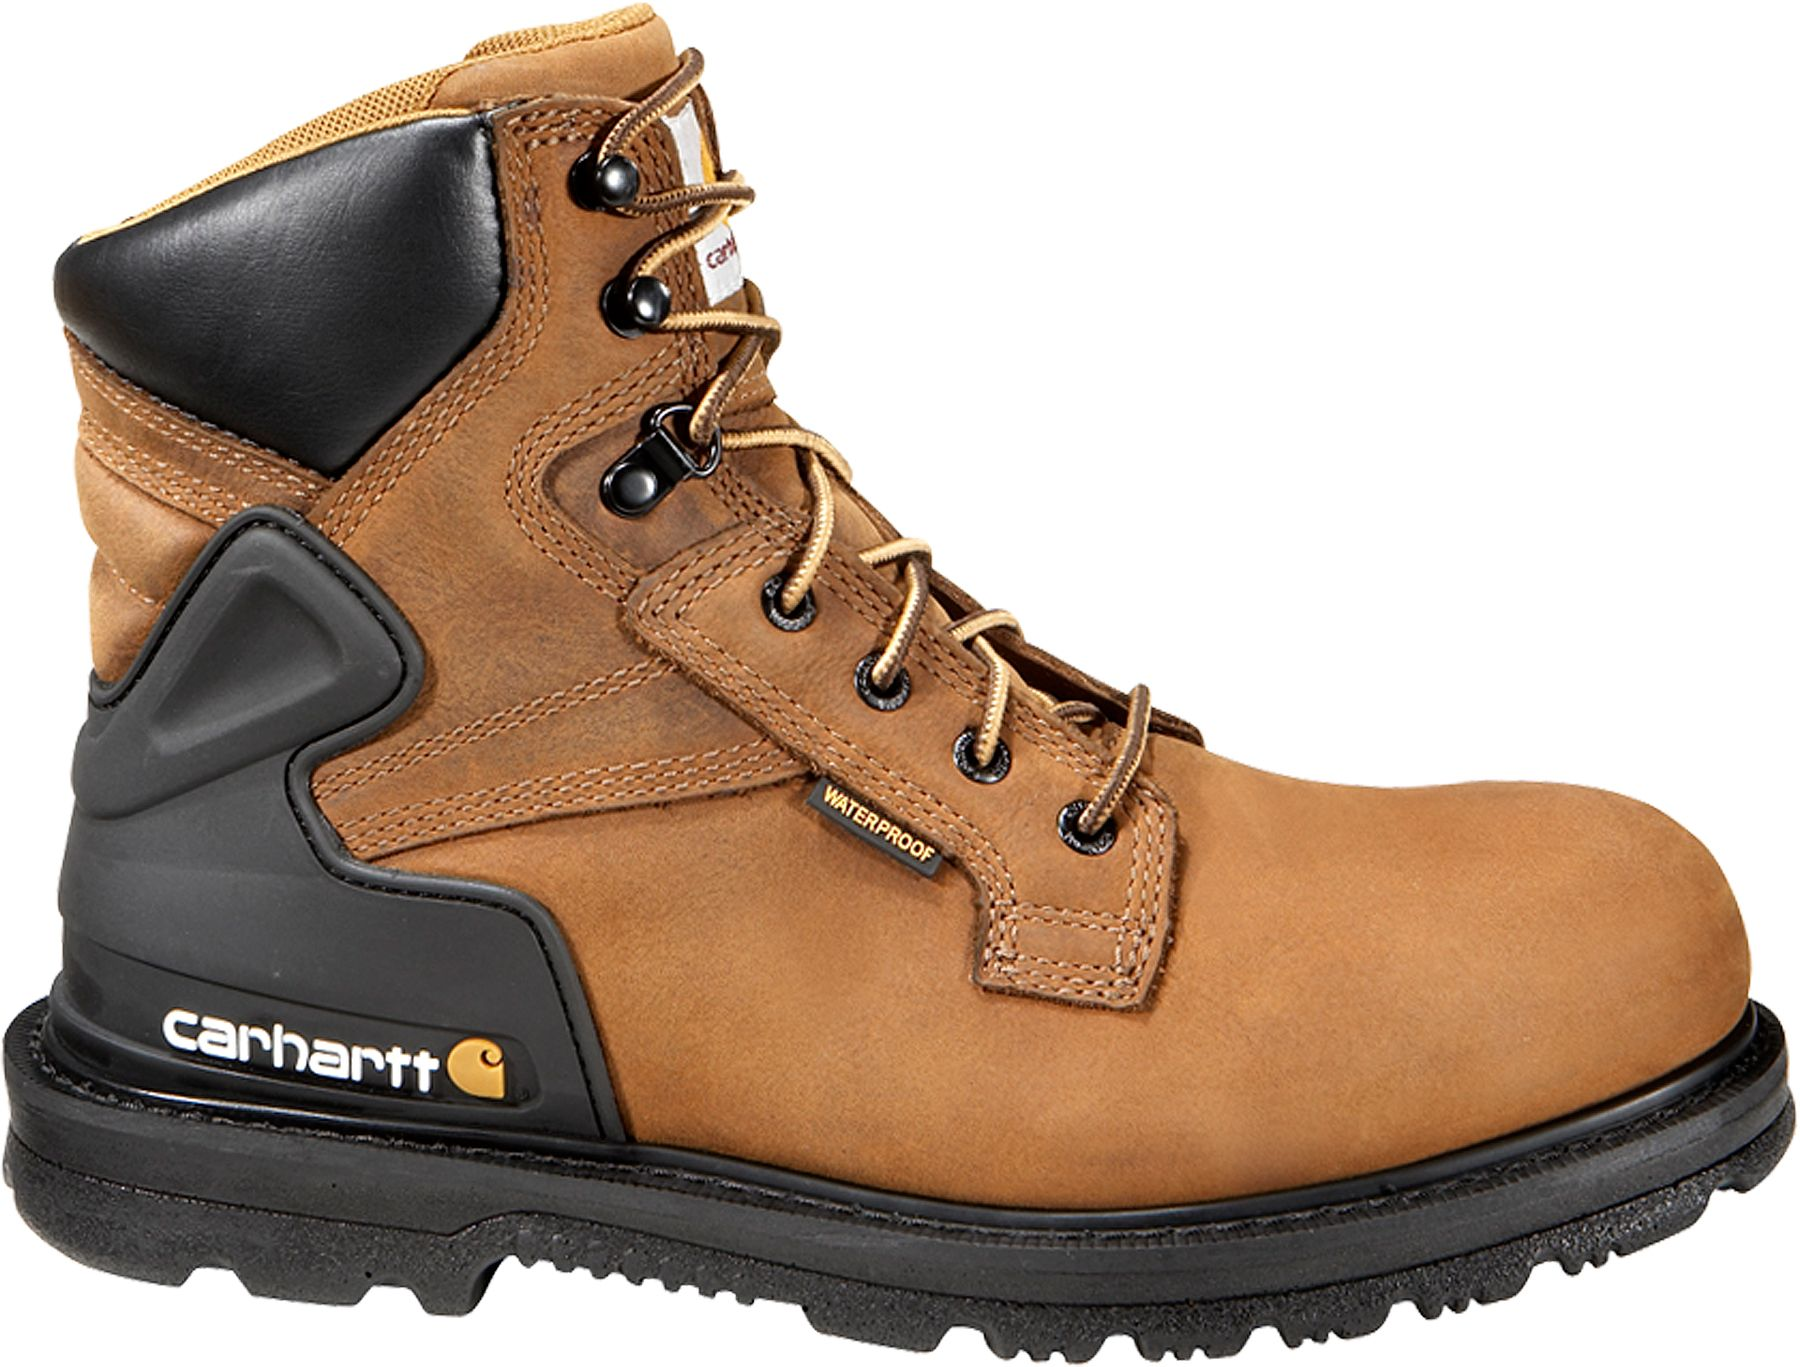 Carhartt Boots & Work Shoes | DICK'S Sporting Goods